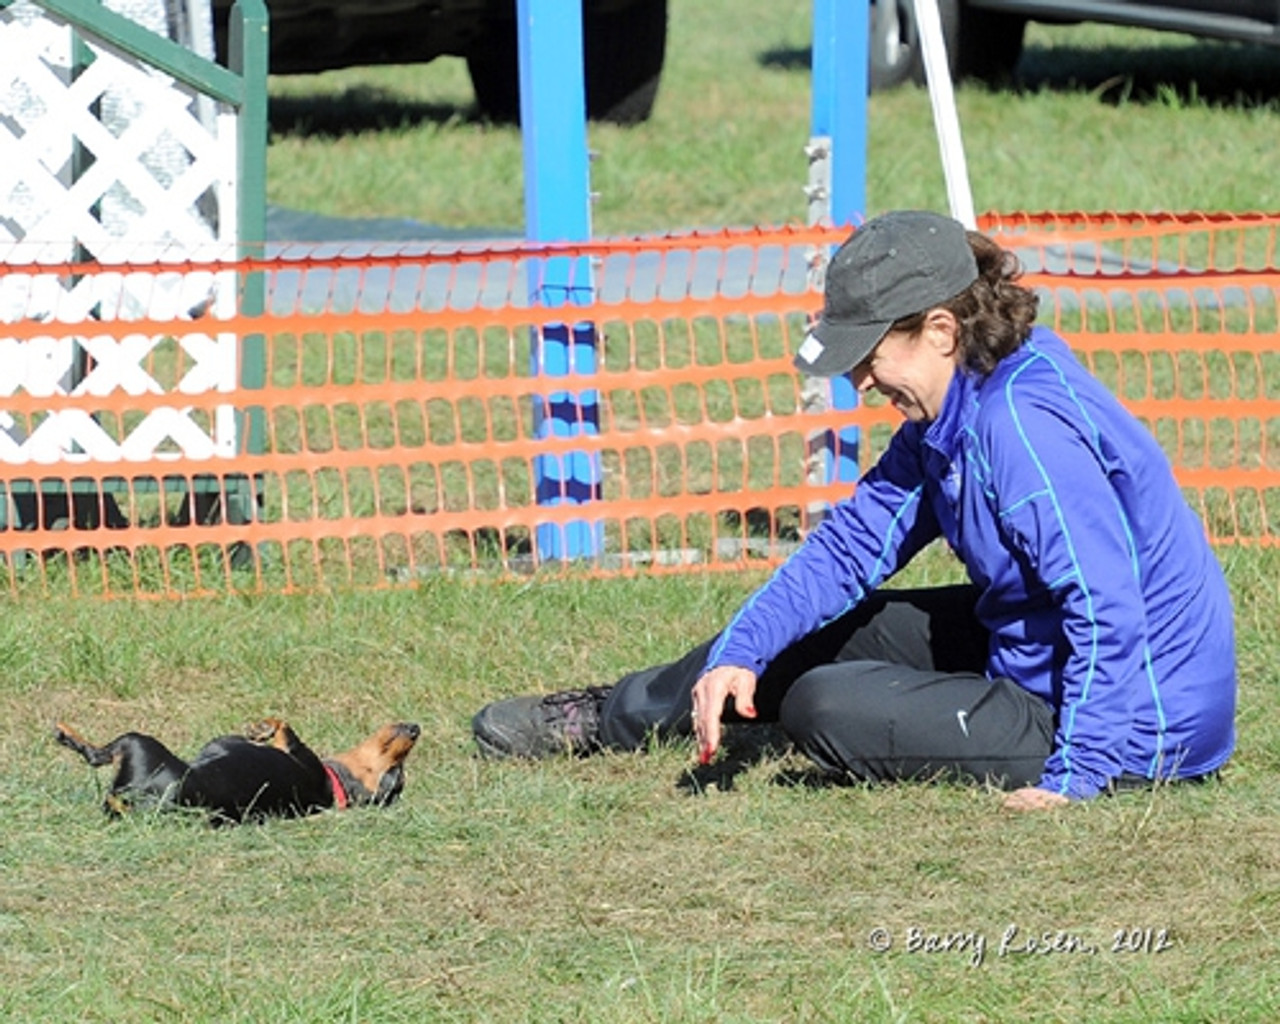 Doing agility and bonding with Roxie, the little d